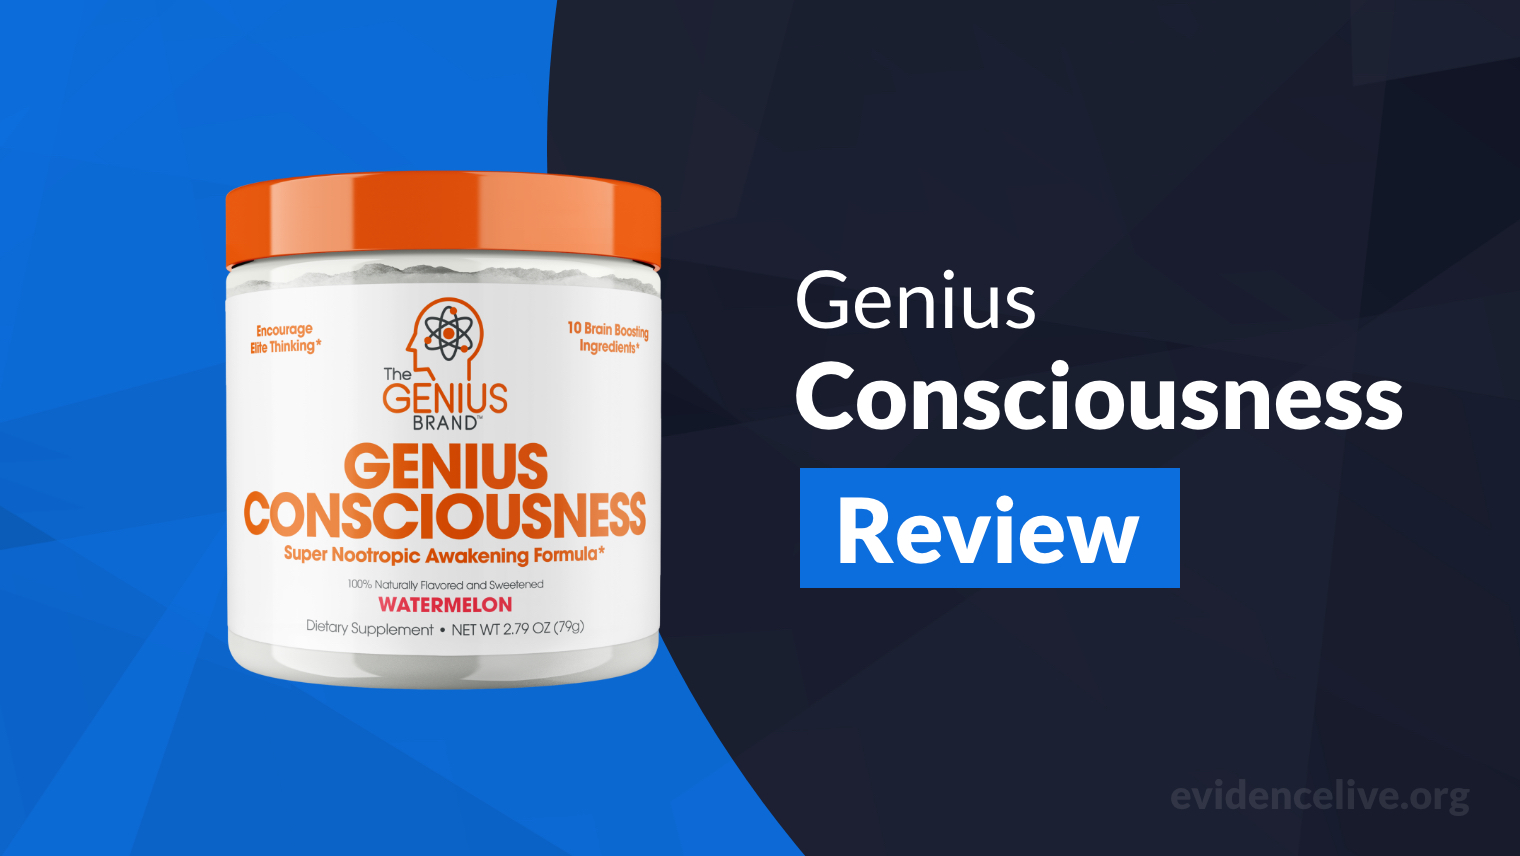 Genius Consciousness Review: Does It Really Work?